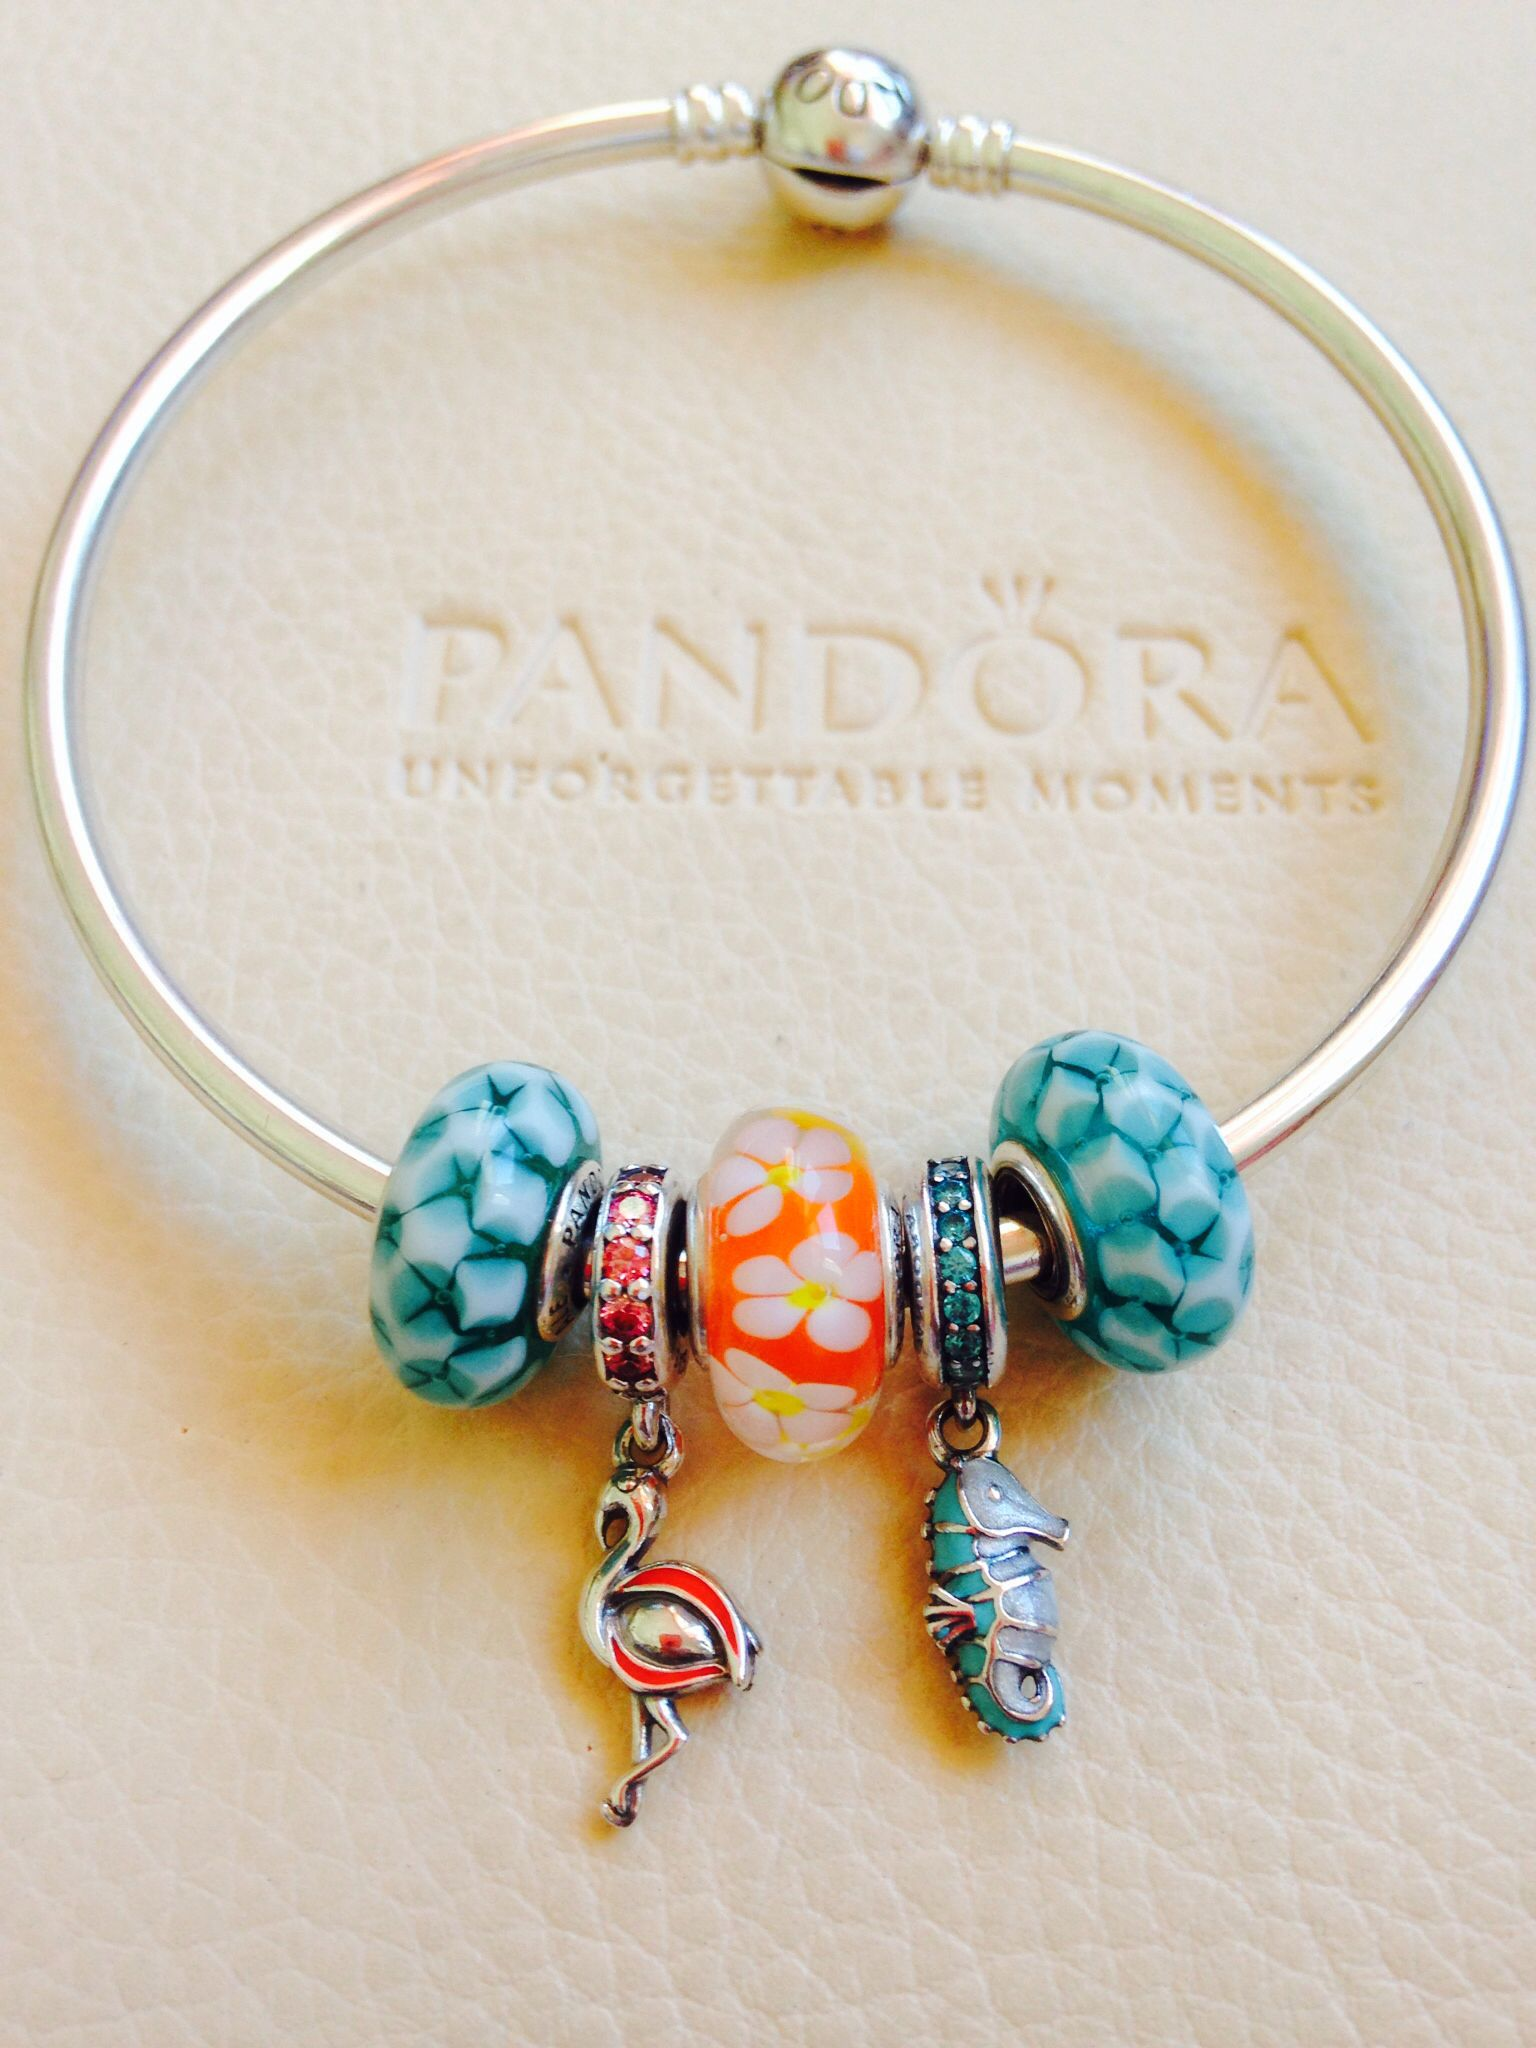 Don't forget to add your last #unforgetablememories of summer on your @officialpandora charm bracelet! #itsalomostfall! www.ackermanjewelers.com